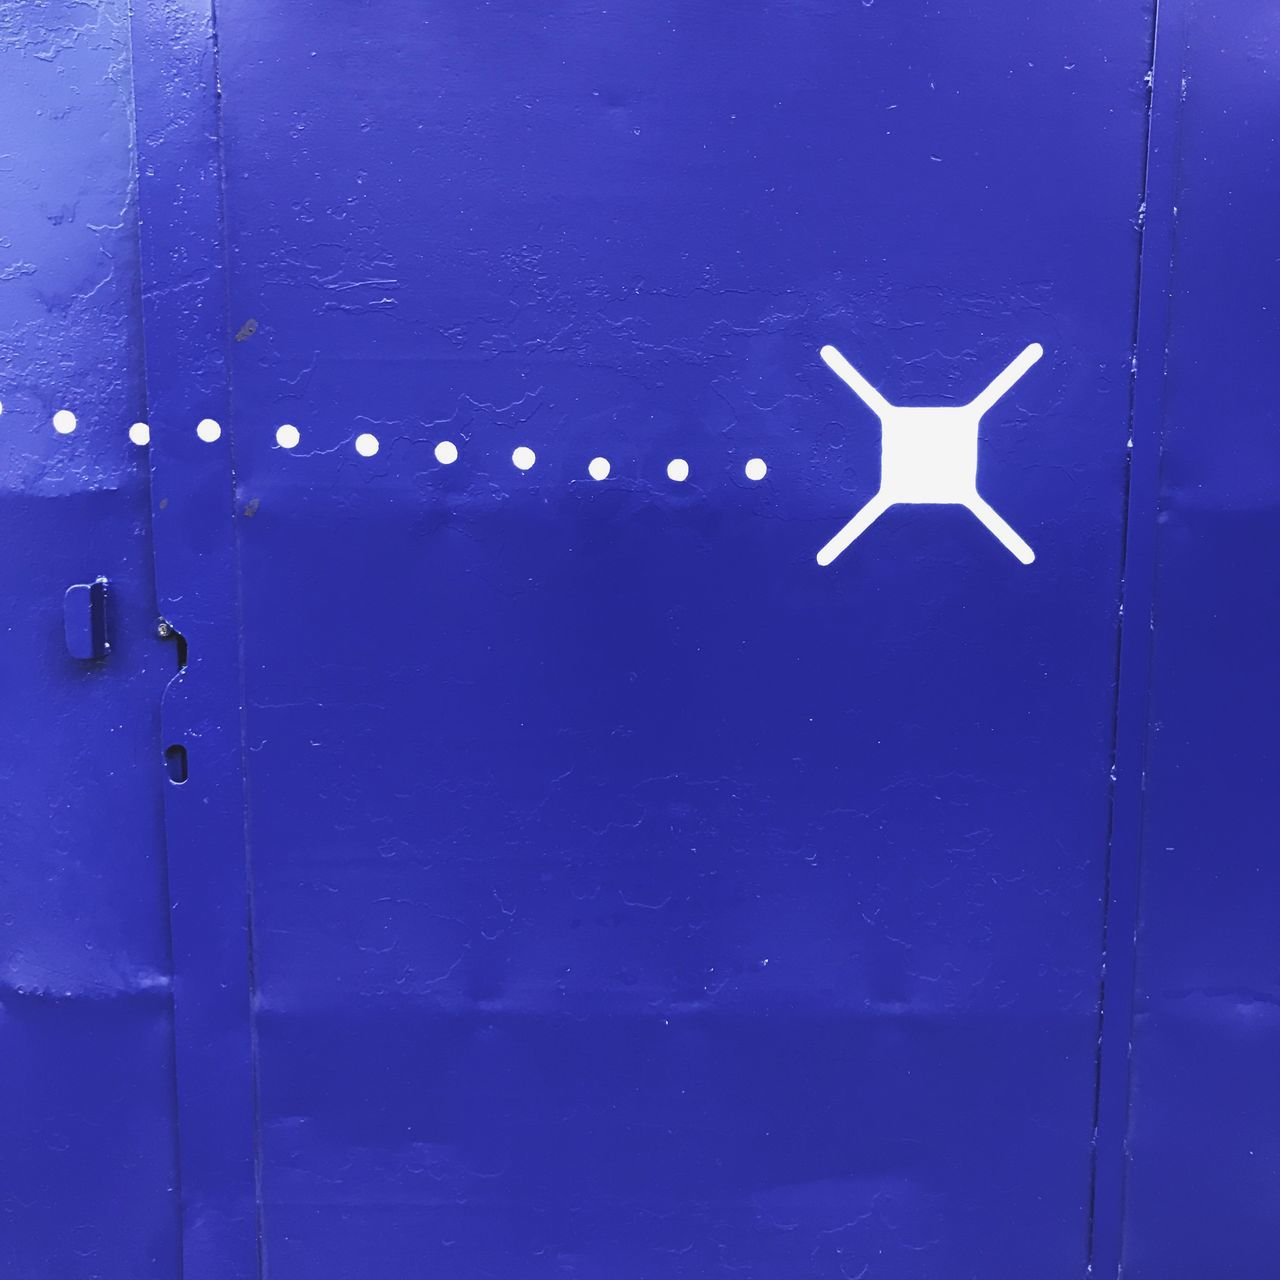 Blue Nanabianca Star Startup Startup In The Space Gate Backgrounds Blue Marello